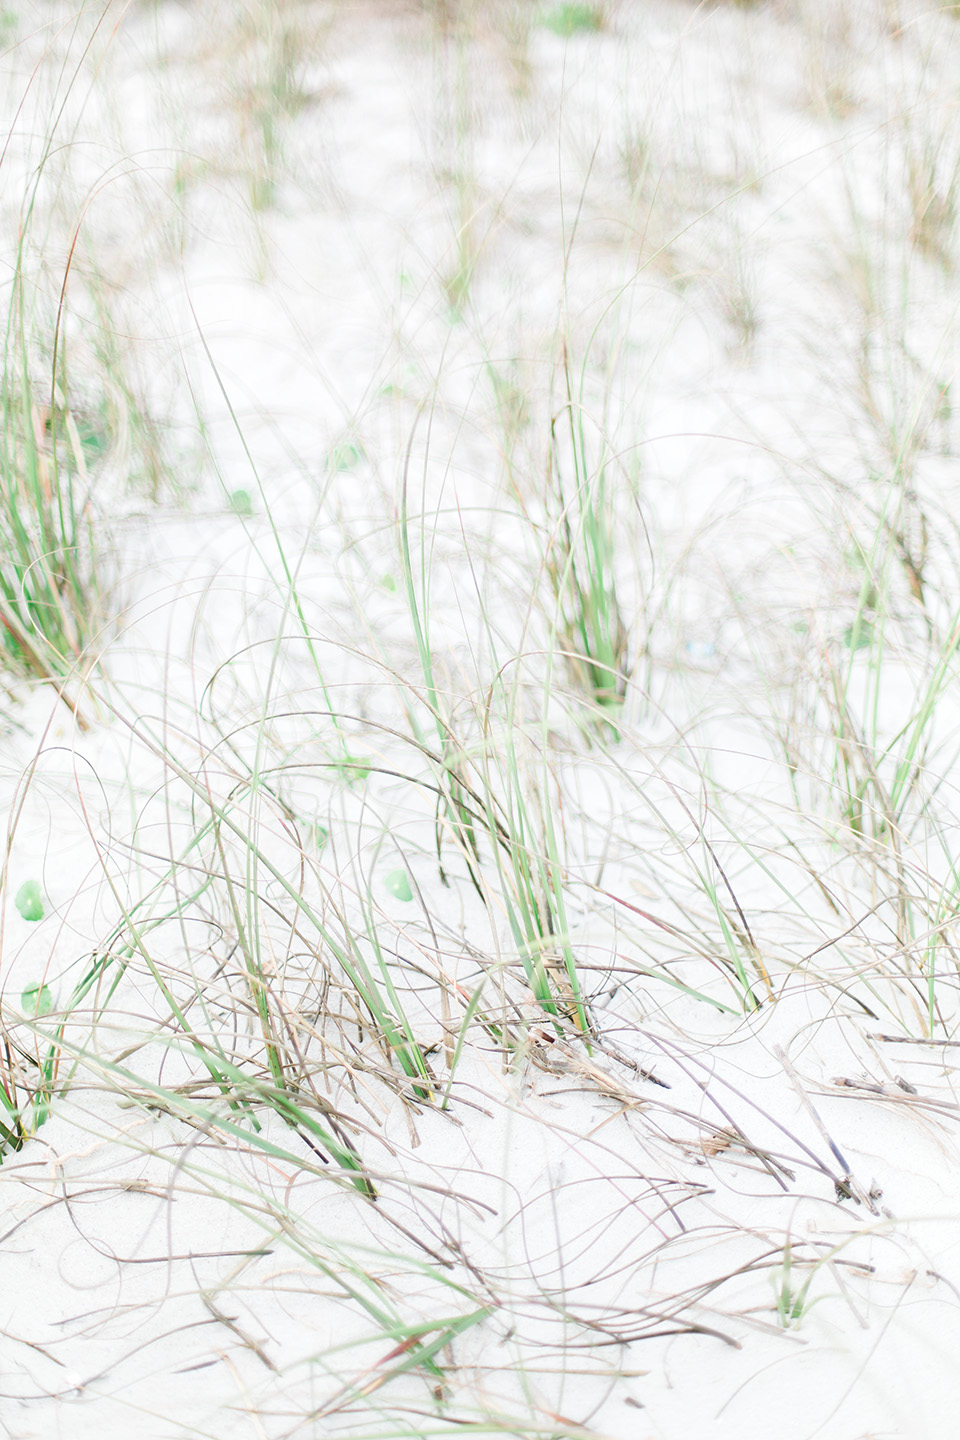 Picture of white sand and dune grass at the Omni Amelia Island Plantation Resort.